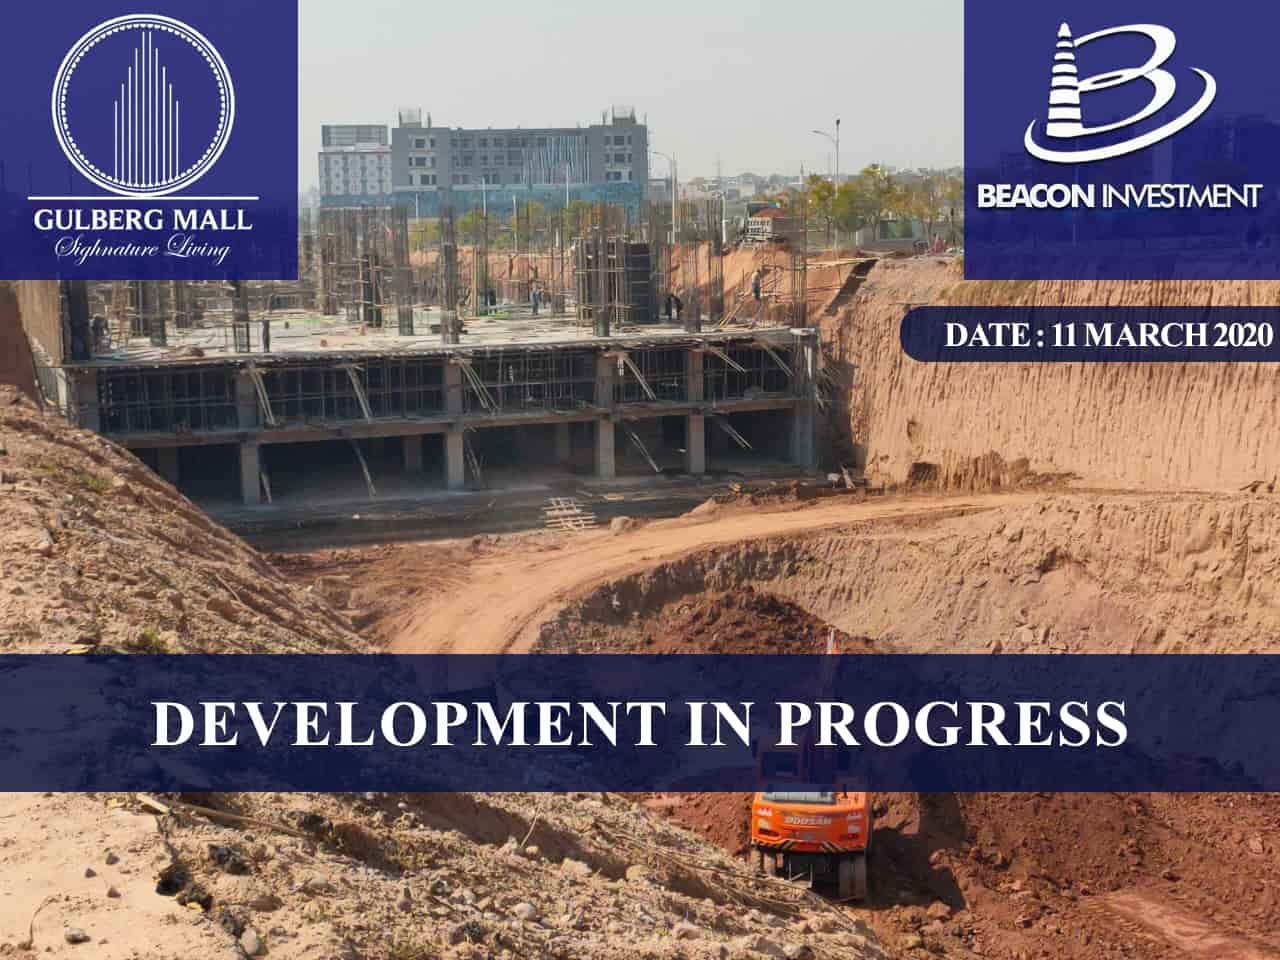 gulberg mall development